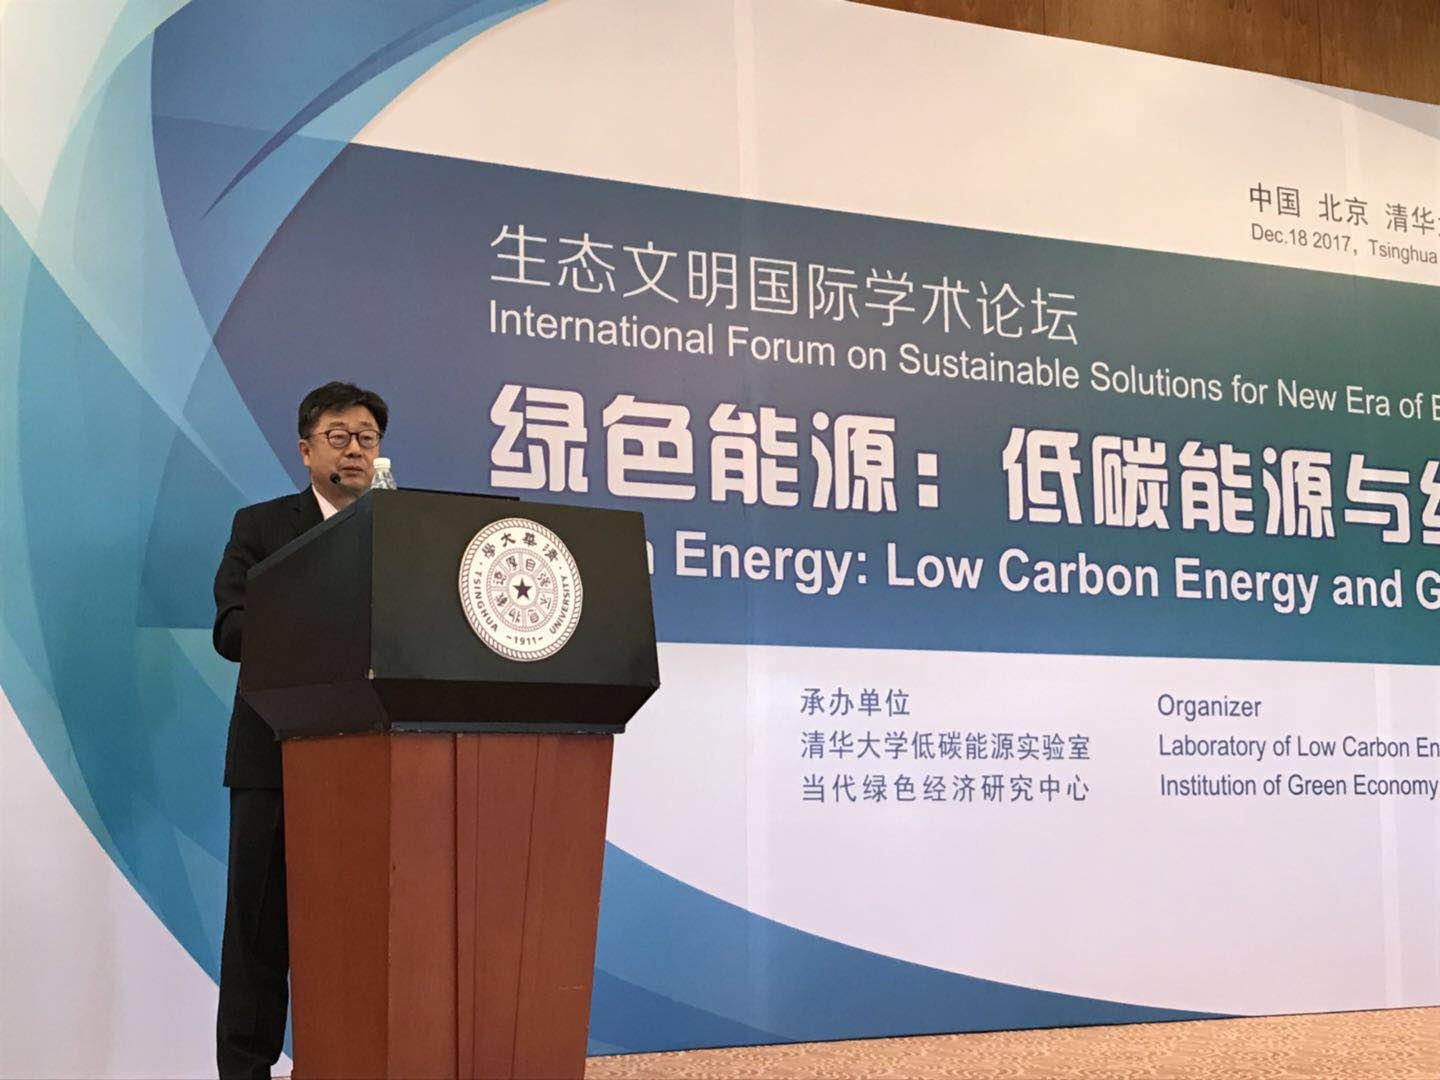 Jiang Lin delivers a keynote speech at the International Forum on Sustainable Solutions for New Era of Ecological Civilization